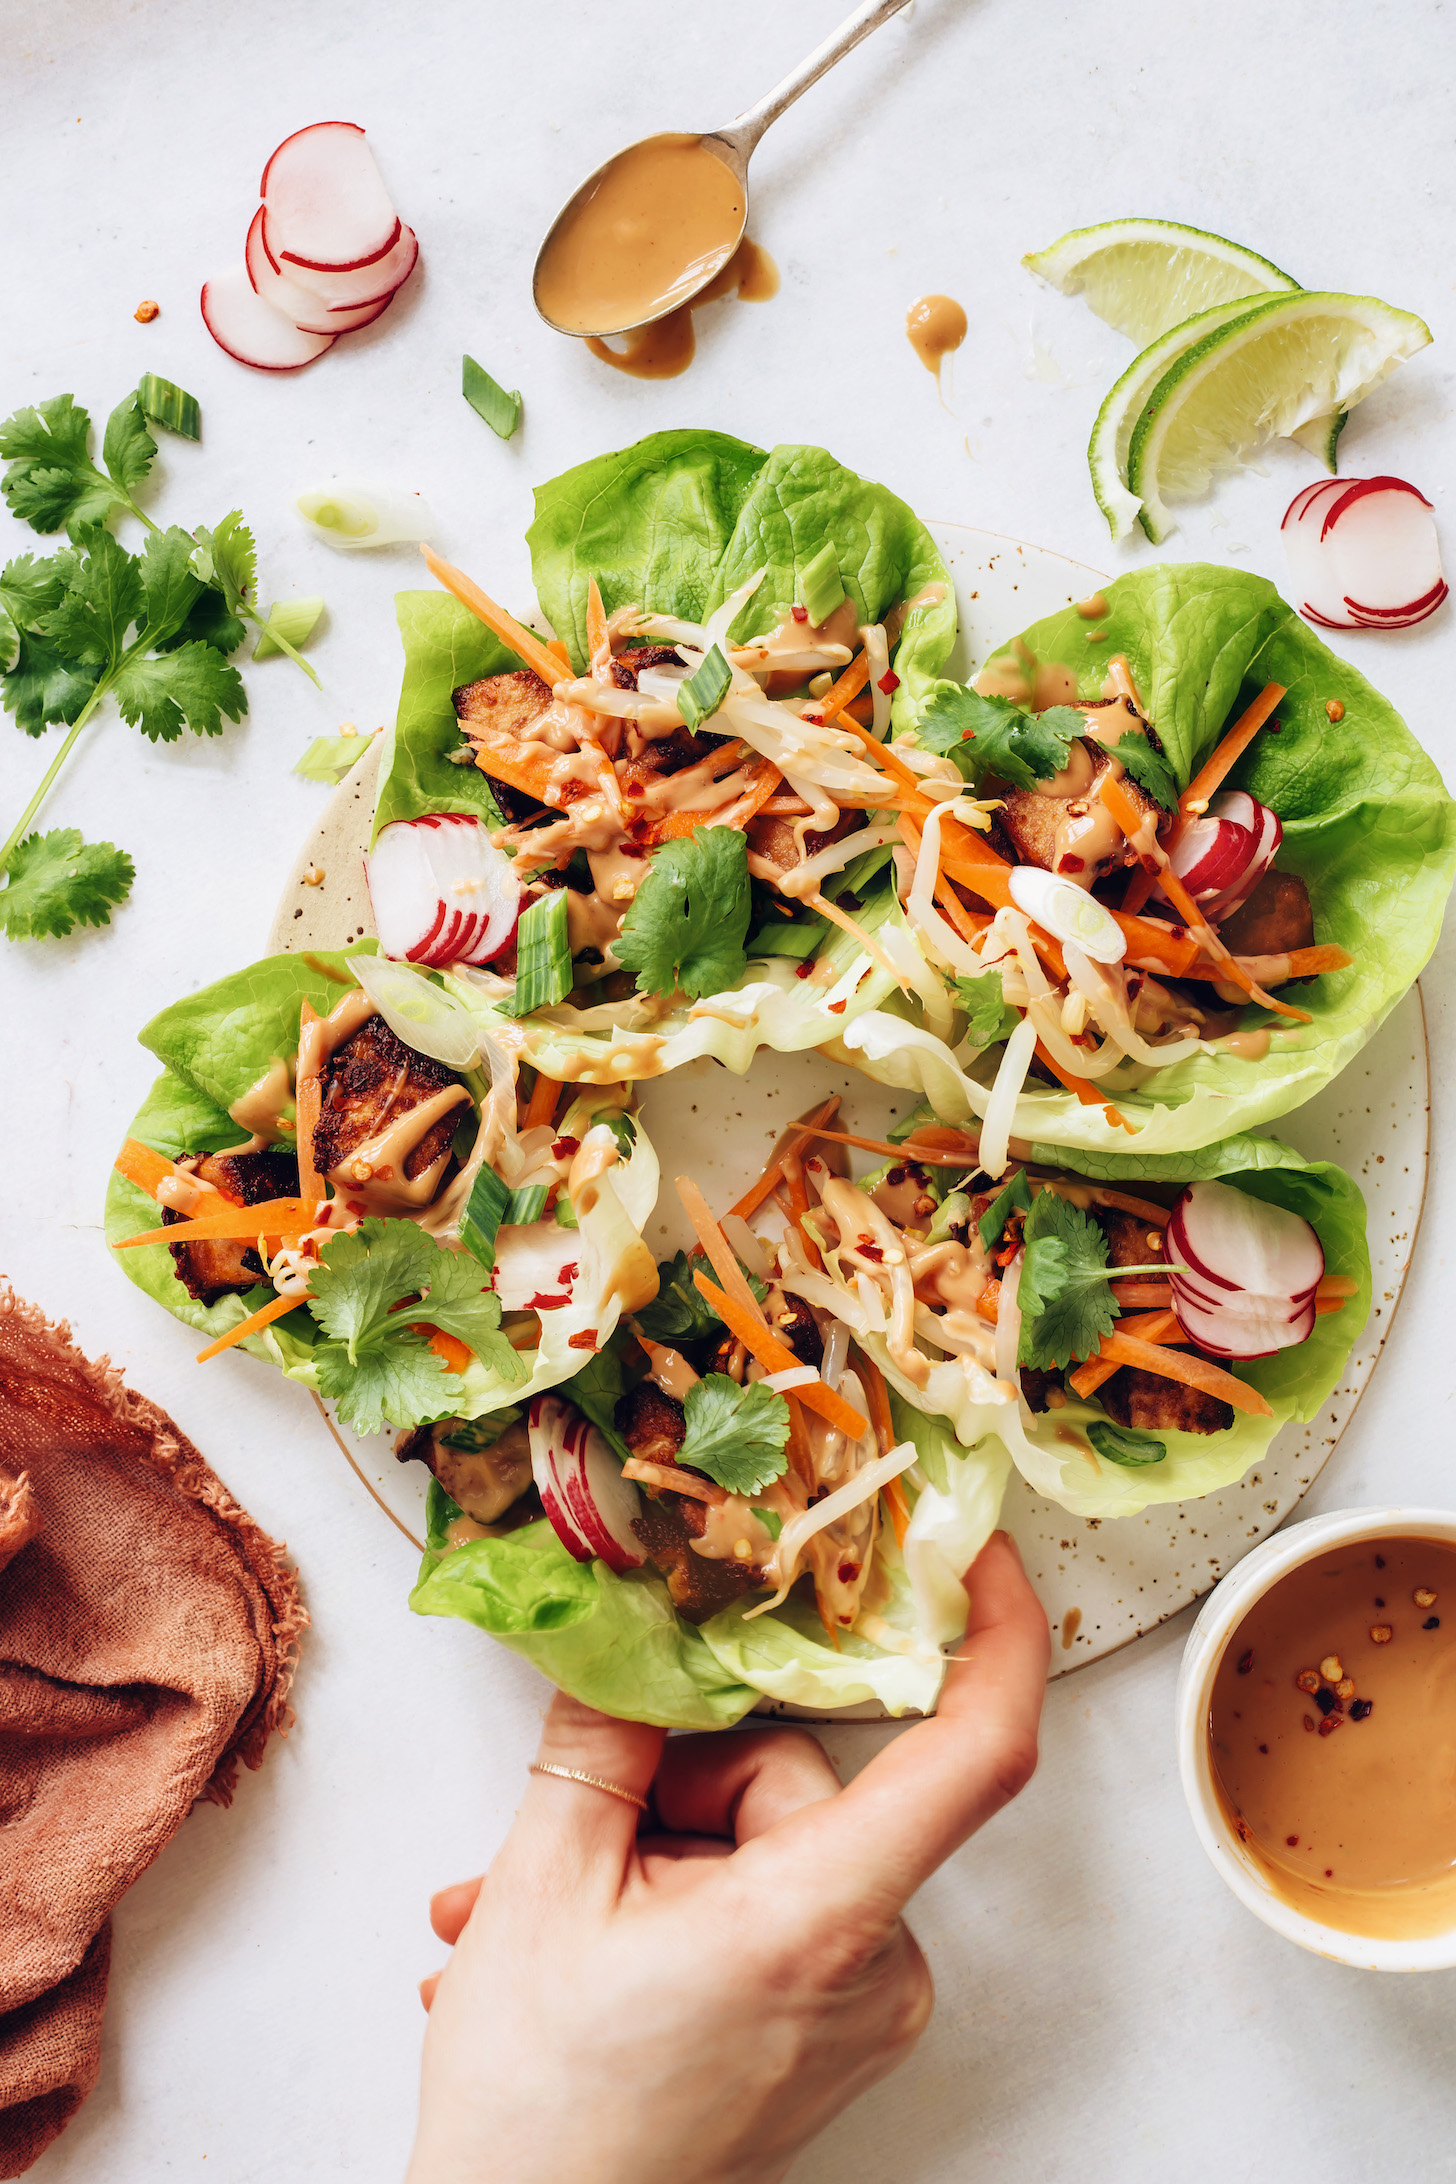 Picking up a Thai-inspired tofu lettuce wrap